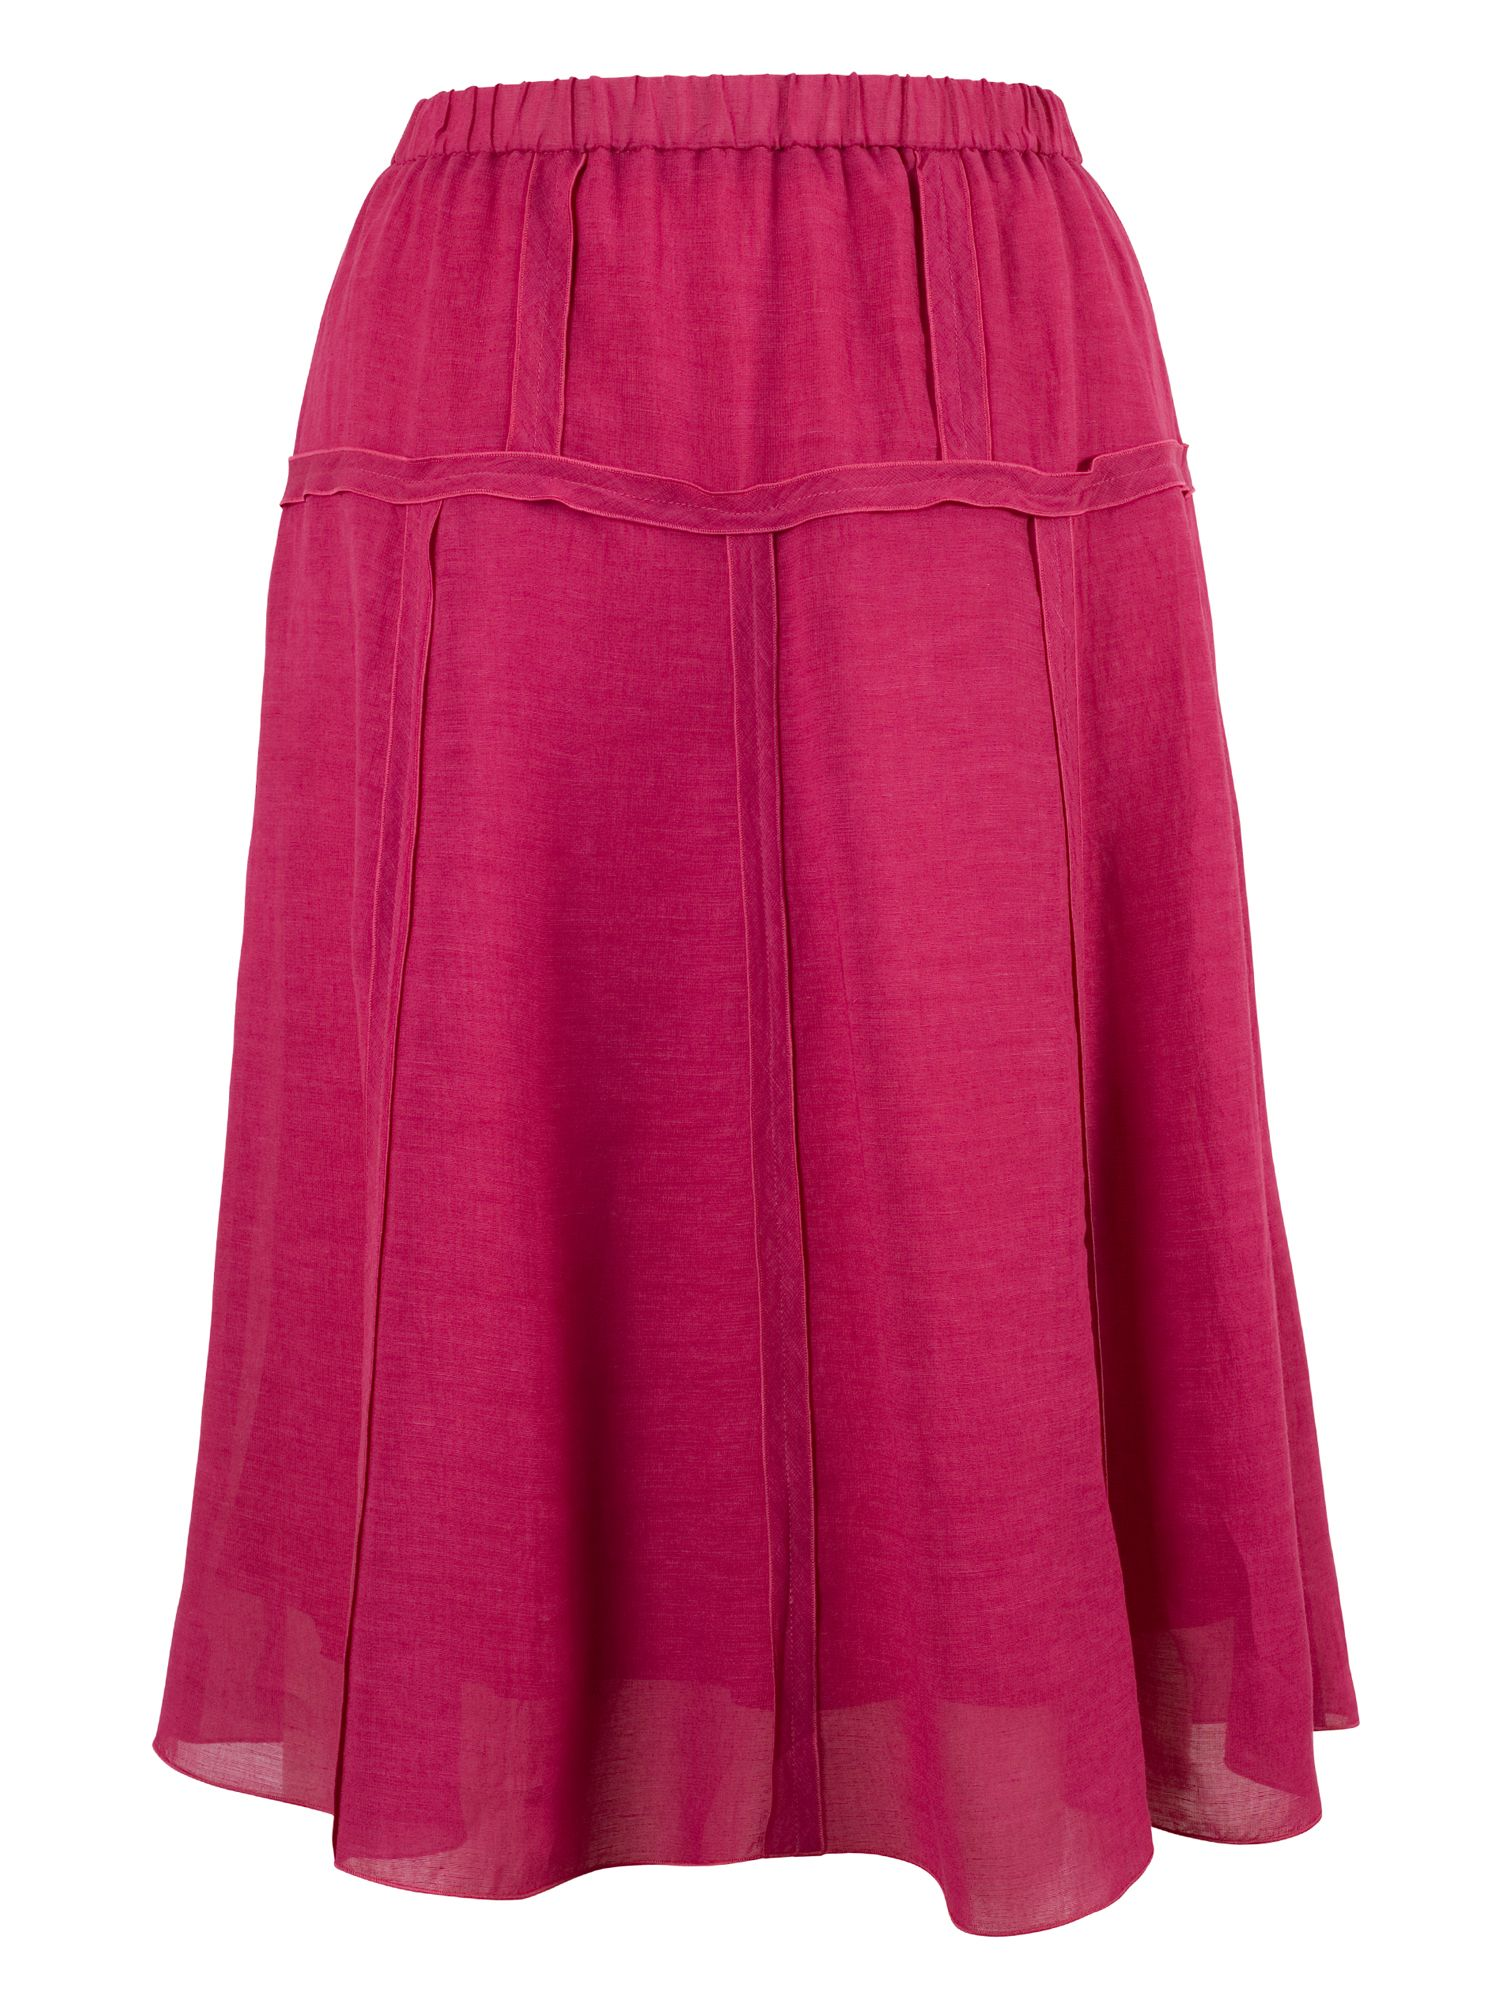 Chesca Tiered Linen Skirt, Pink